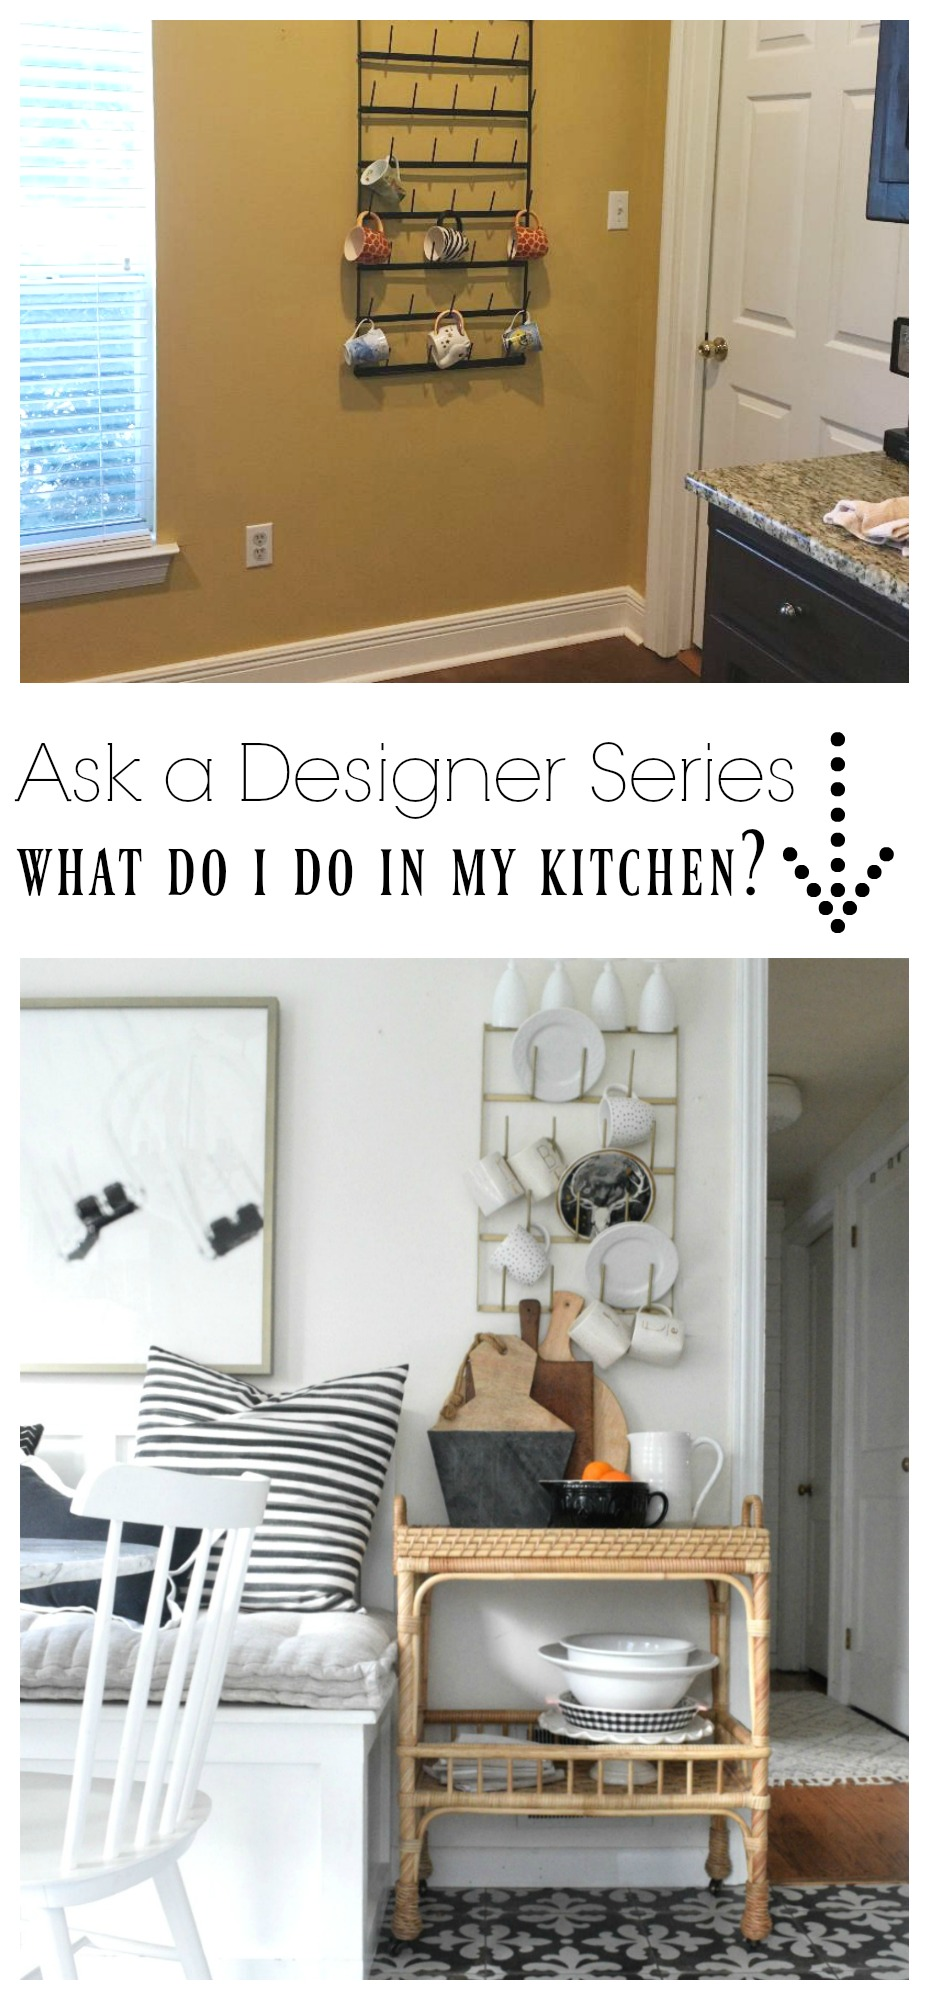 Ask a Designer Series- What do I do in my Kitchen?